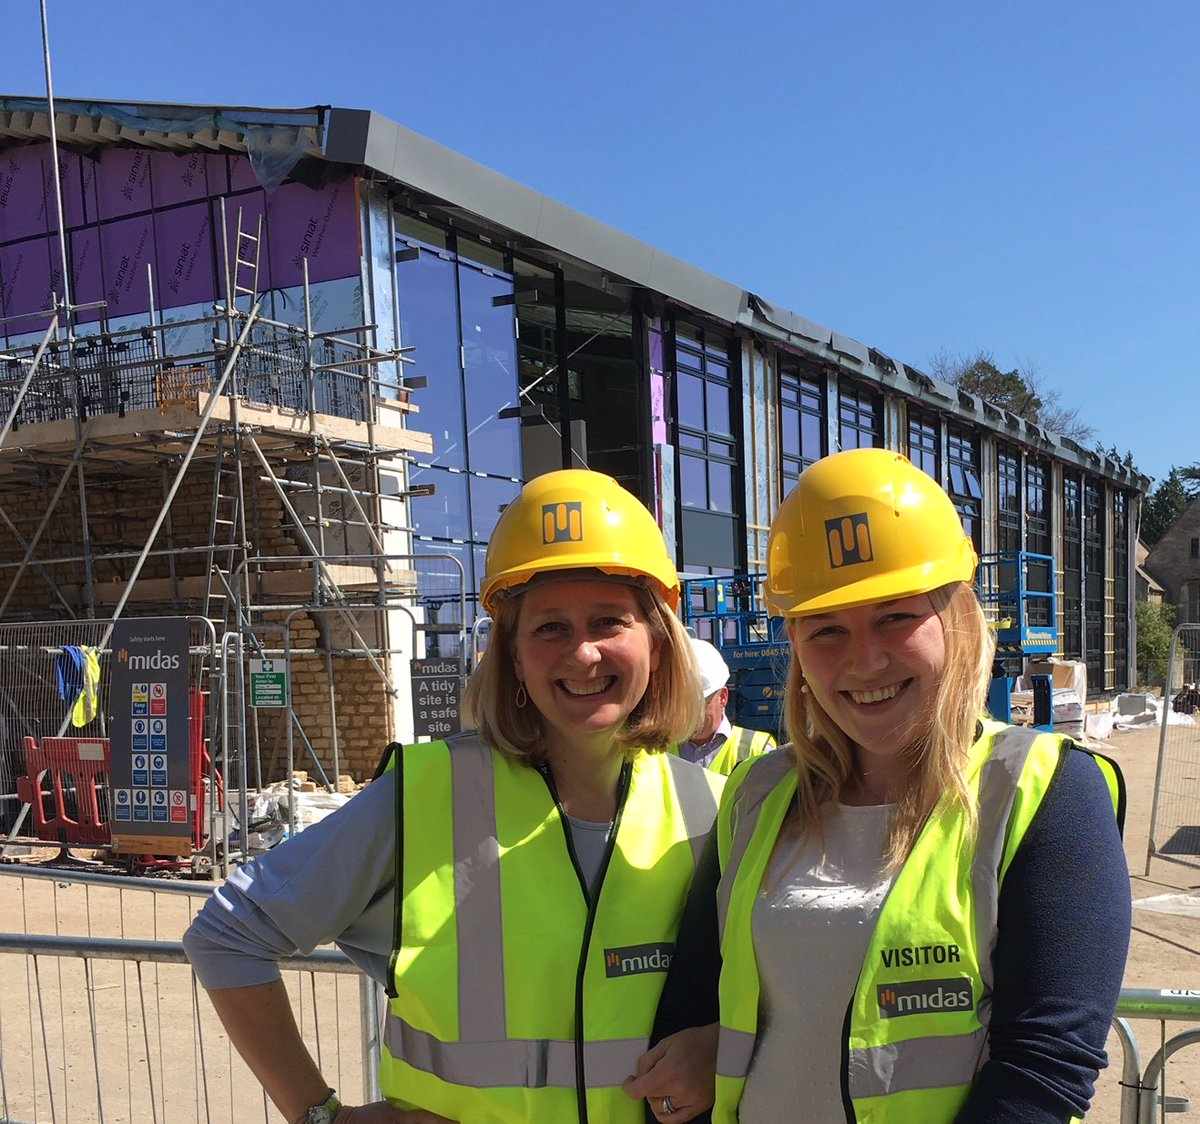 Yesim, Growth Hub Manager &amp; Verity, Centre &amp; Events Manager @Farm491 enjoying a first internal walk around the new Growth Hub Building. Its very big and very shiny! #agritech #innovation #growth @GFirstLEP @RoyalAgUni #Cirencester #farming #business #startup <br>http://pic.twitter.com/tCUYslittV